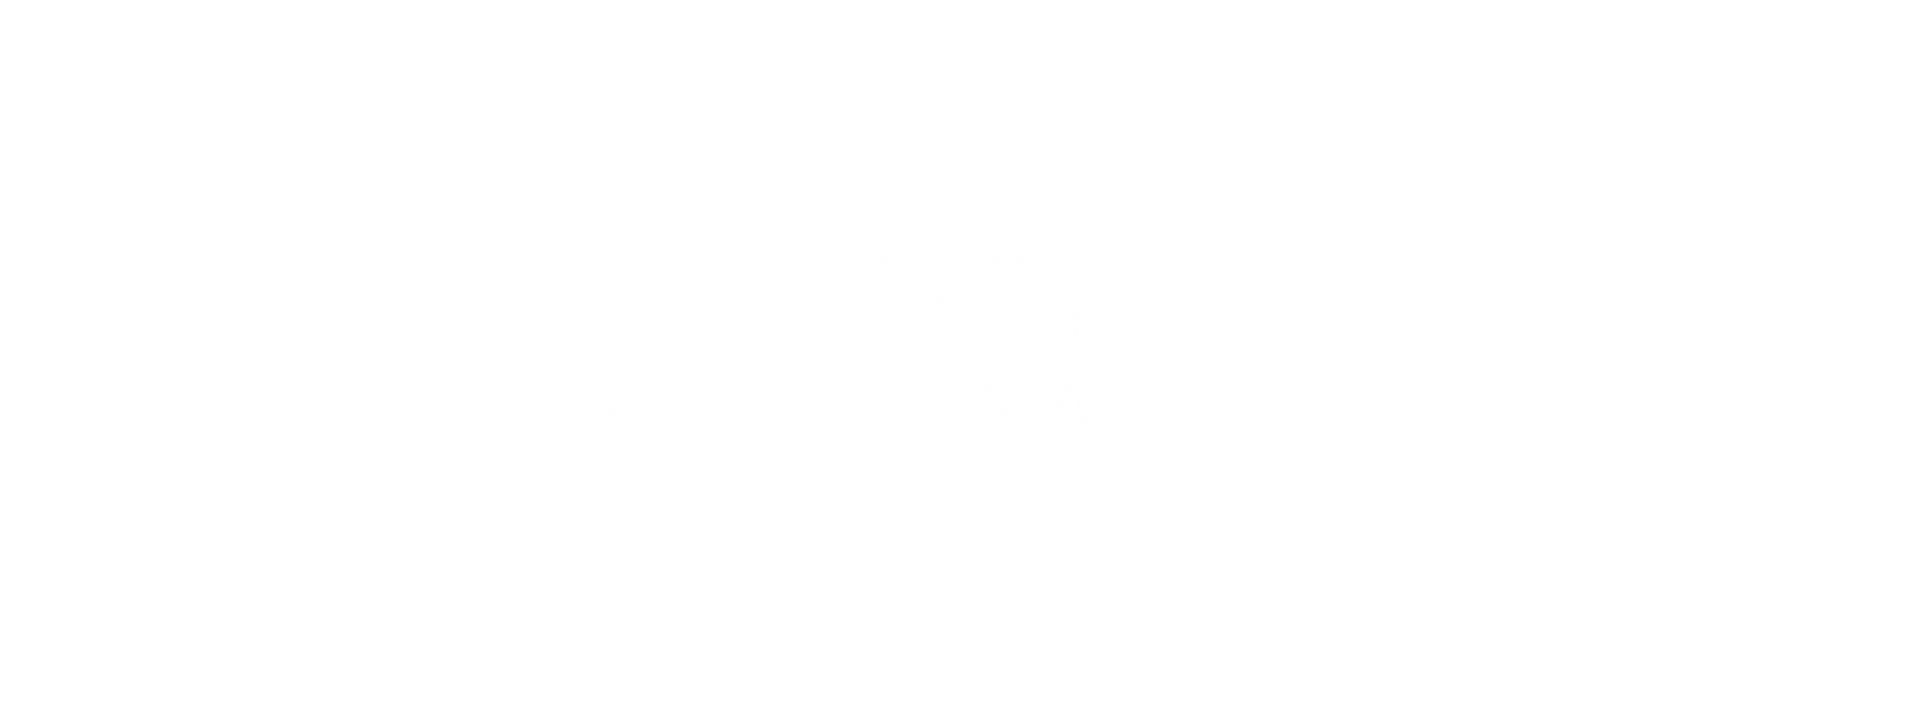 The Black Wallet